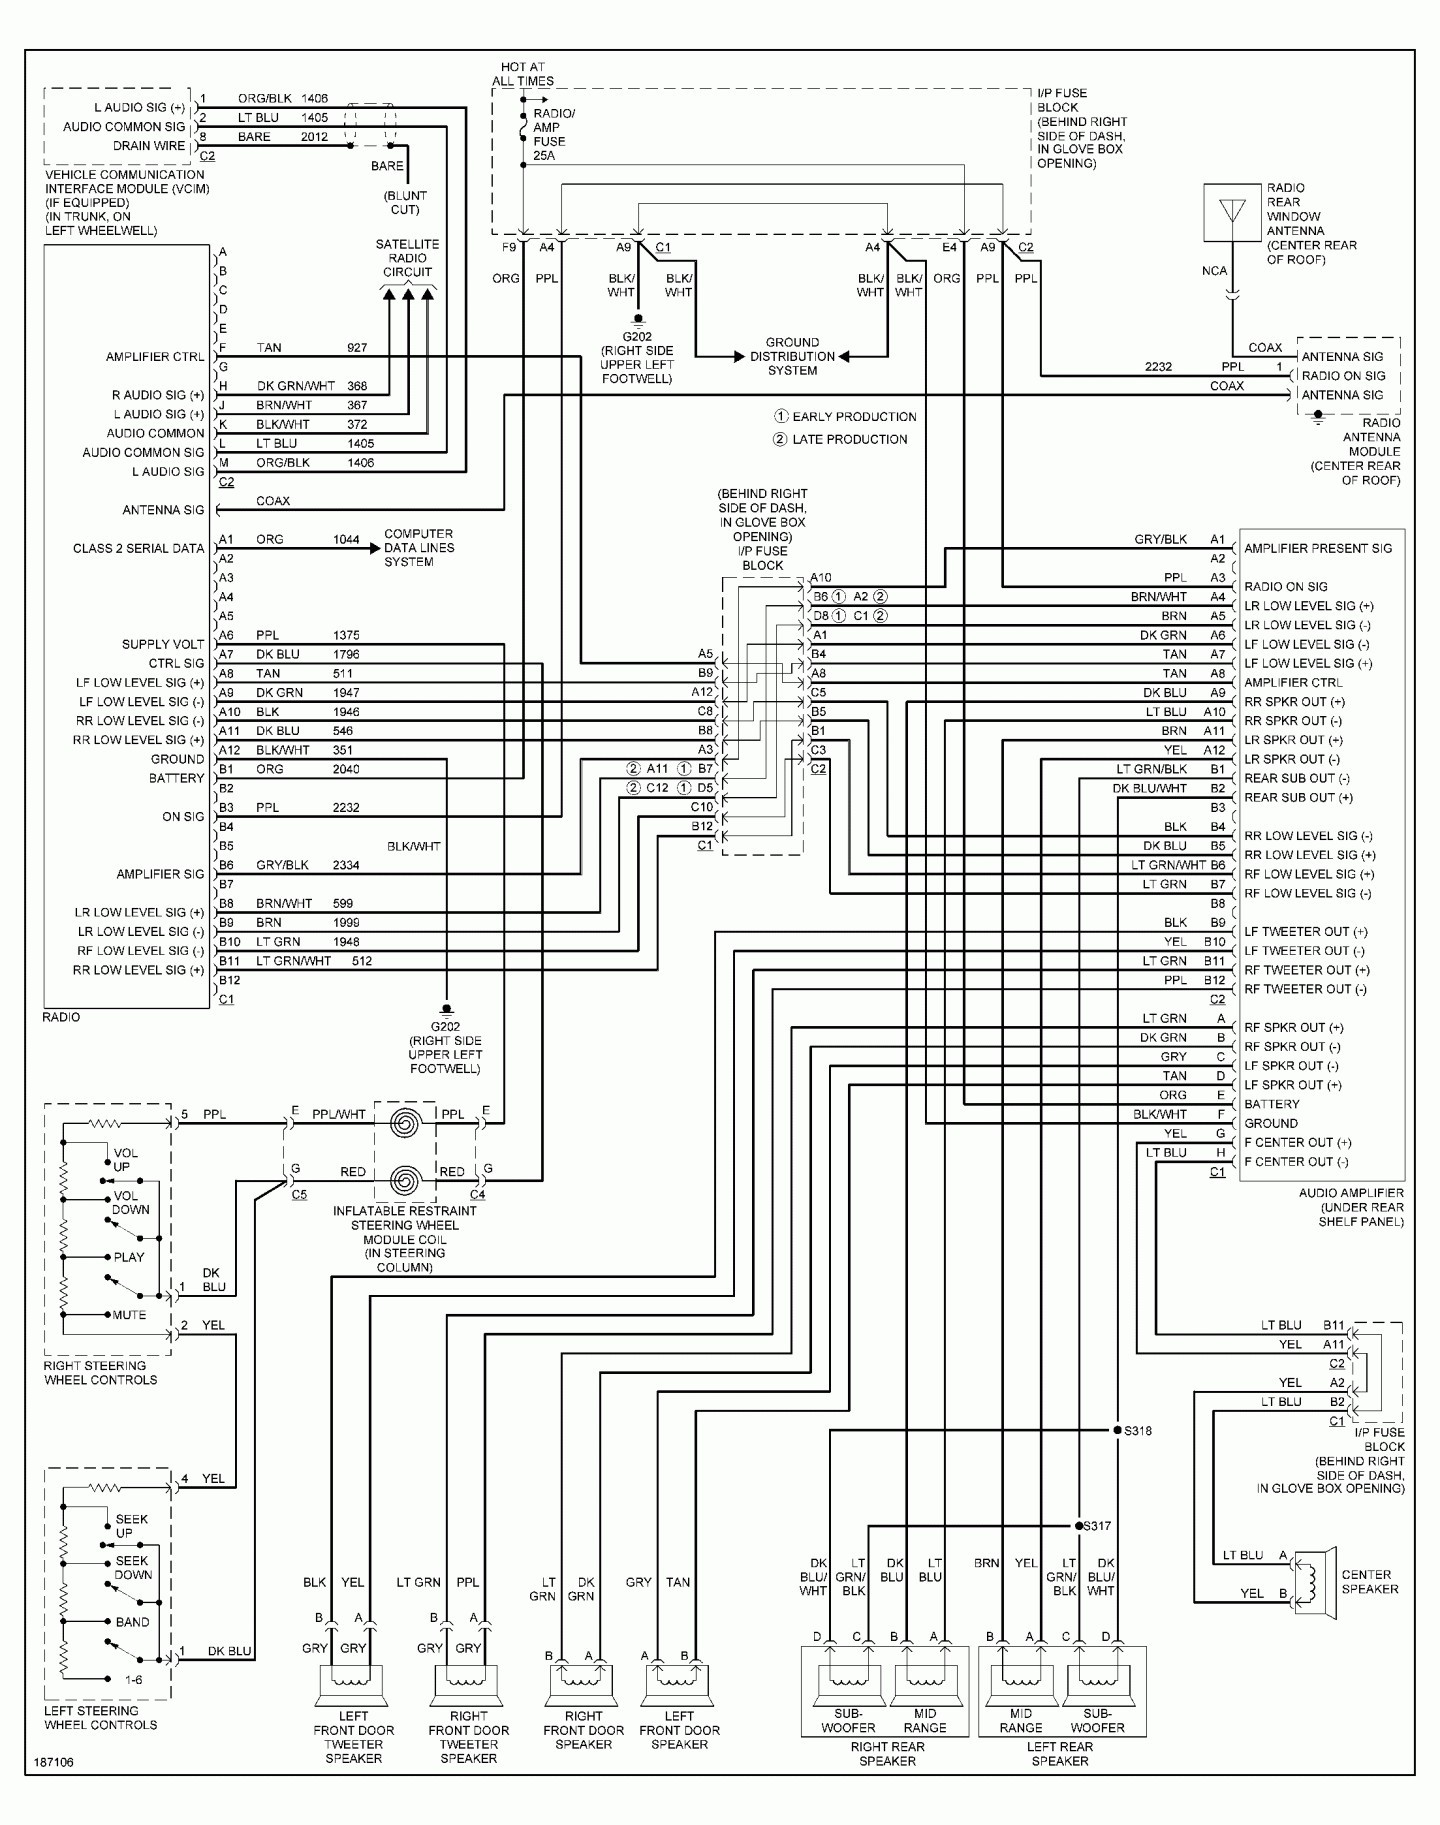 Steering Wheel Radio Controls Wiring Diagram Inspirational Vw Jetta Stereo Wiring Diagram In Hummer H2dio and